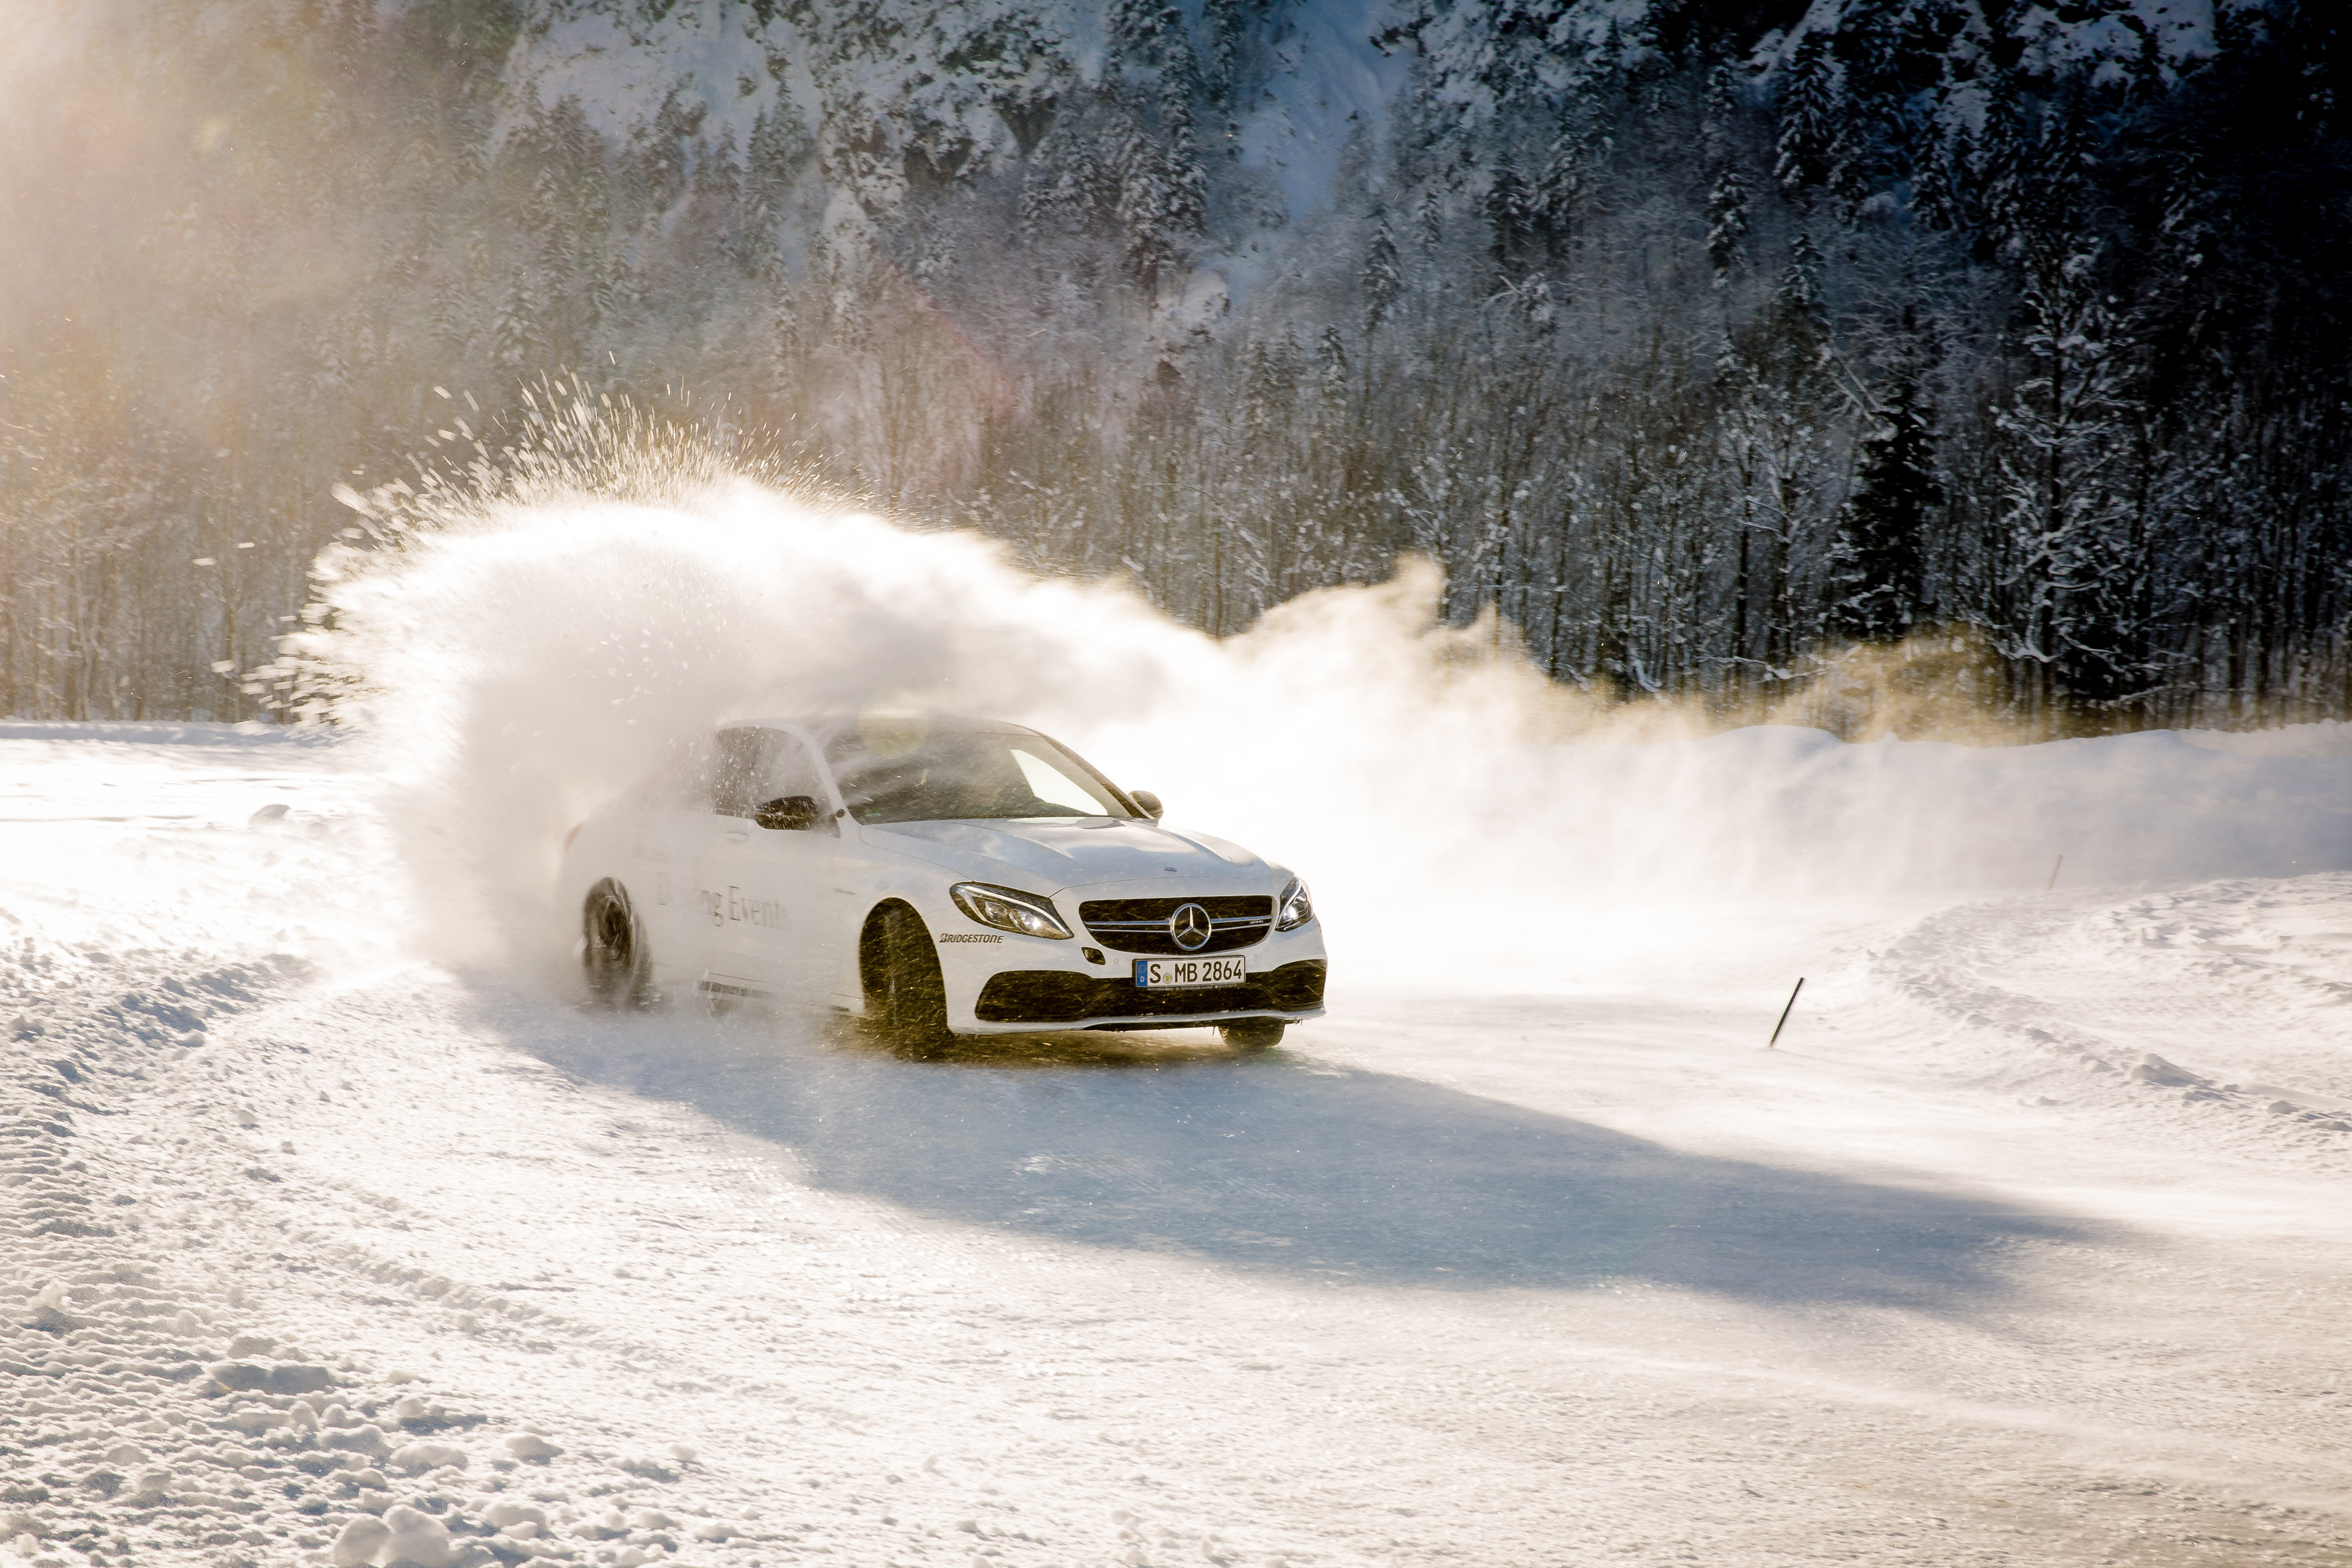 Härtetest in den Alpen - Mit Bridgestone beim Mercedes-Benz Driving Event